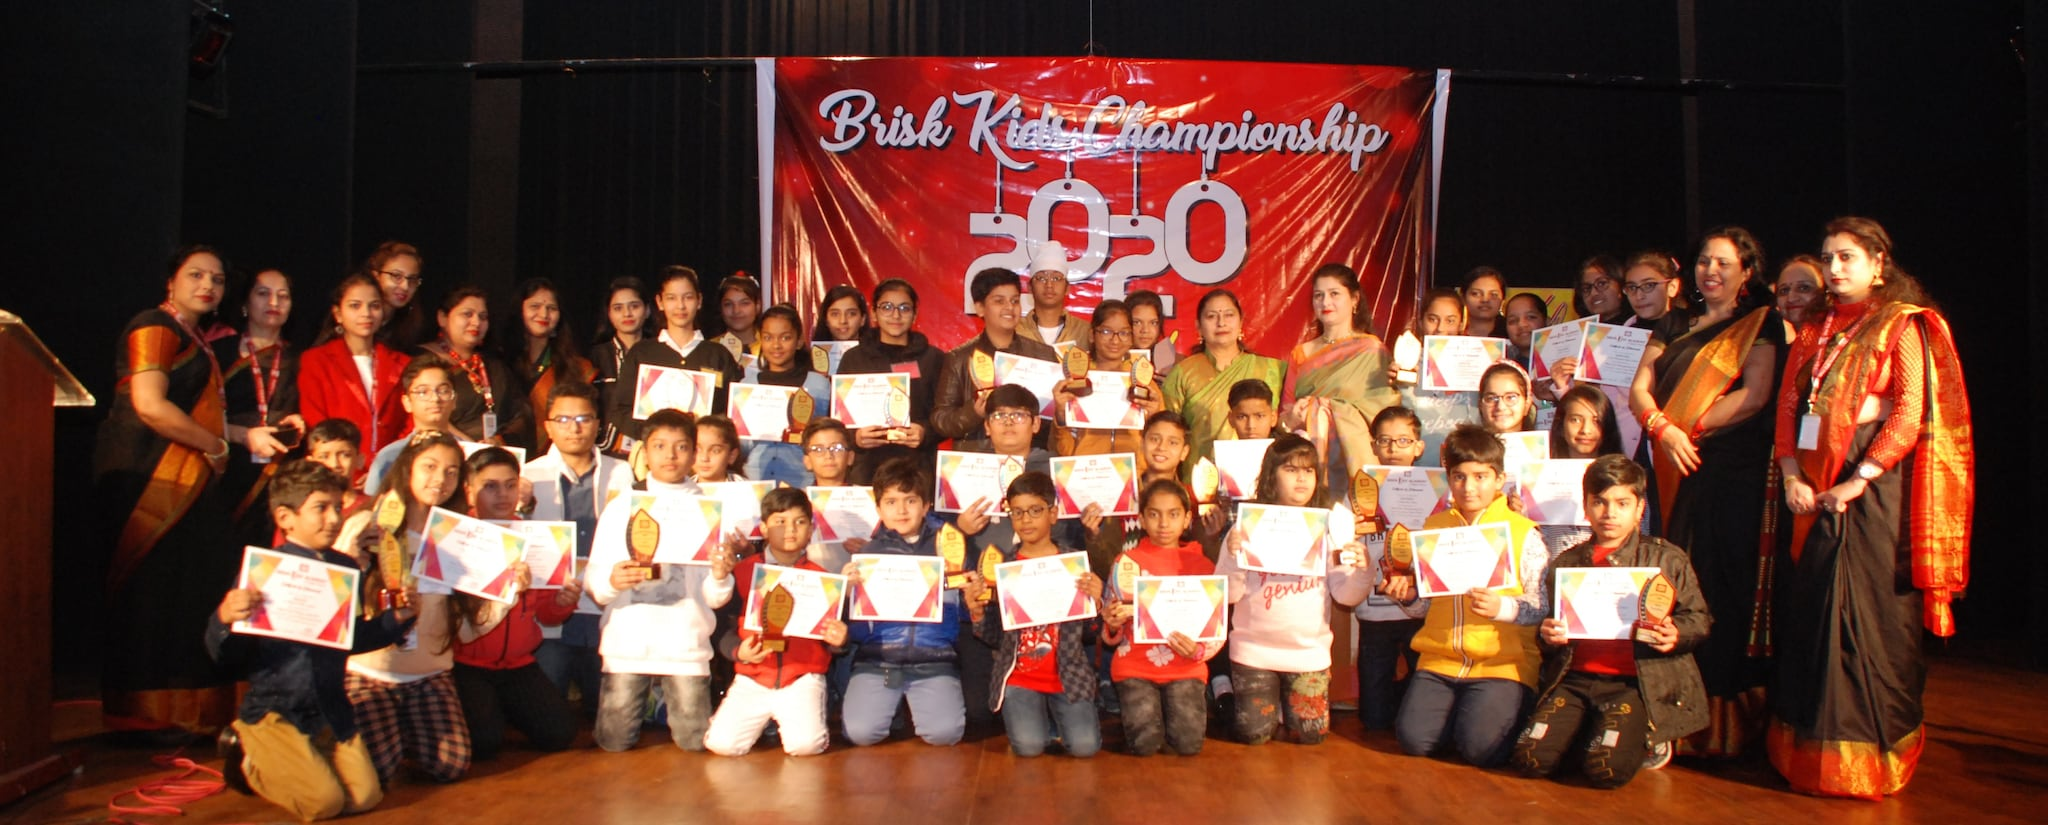 Championship Awards given by Brisk Kids Academy